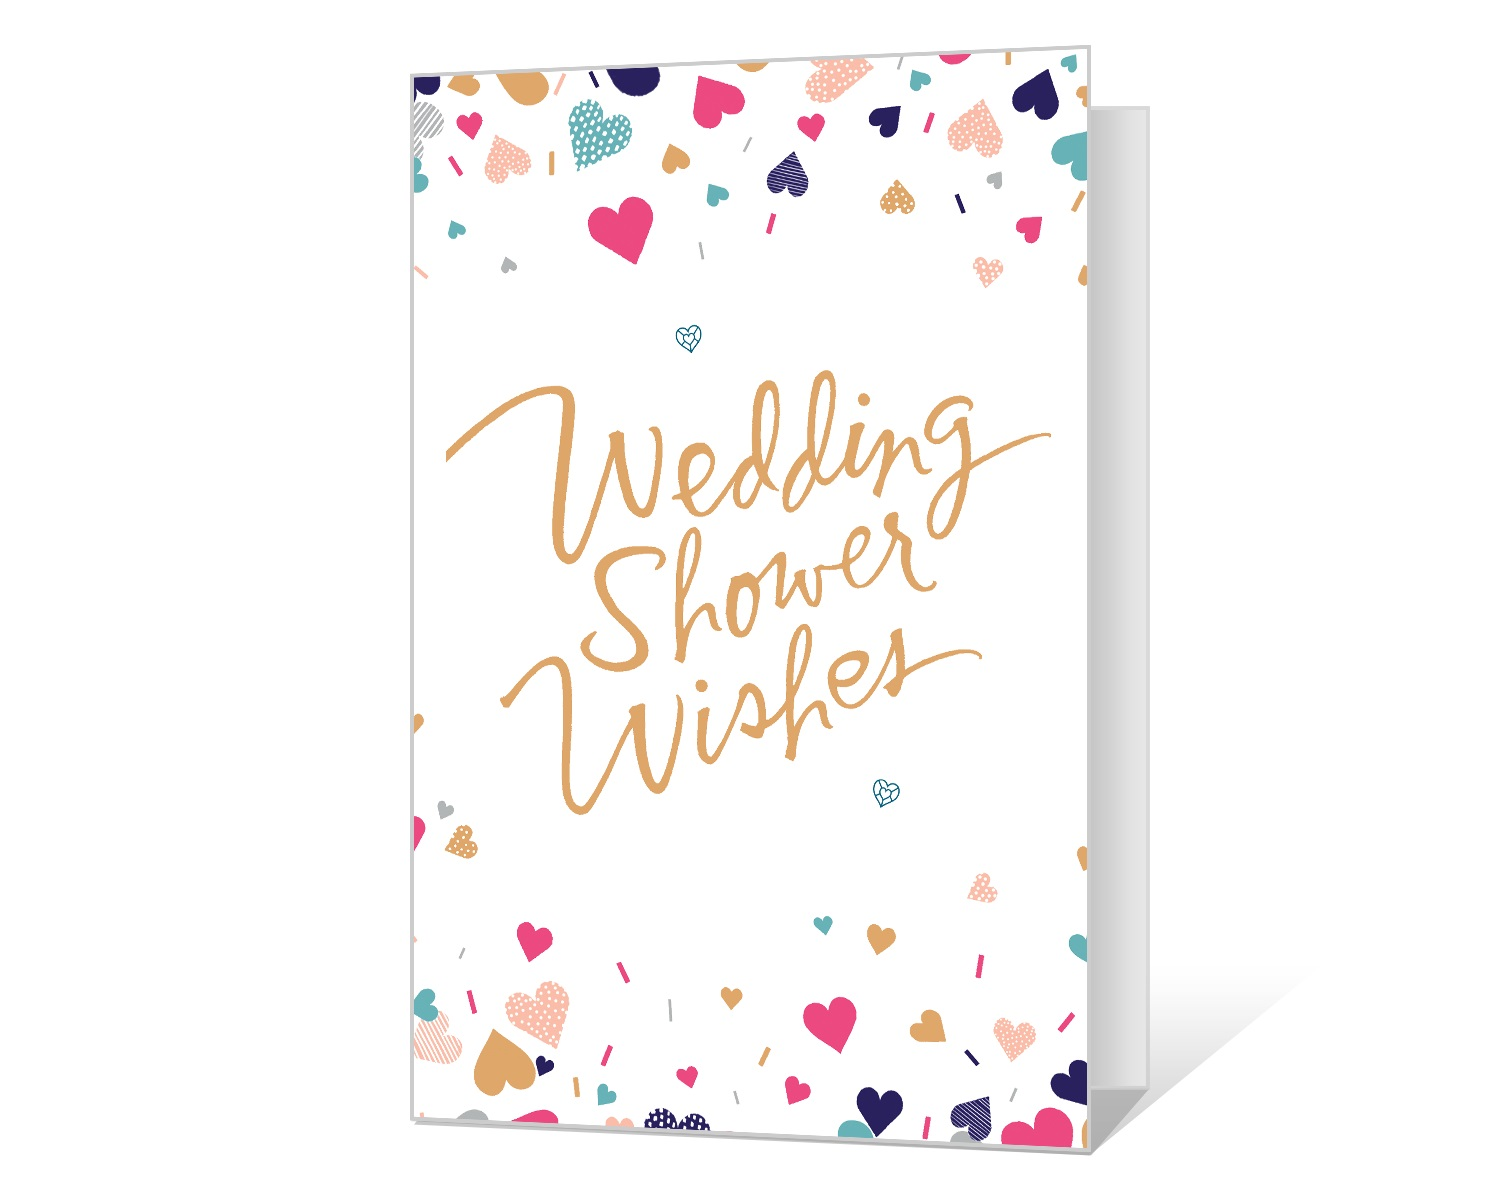 008 Remarkable Bridal Shower Card Template Concept  Invitation Free Download BingoFull